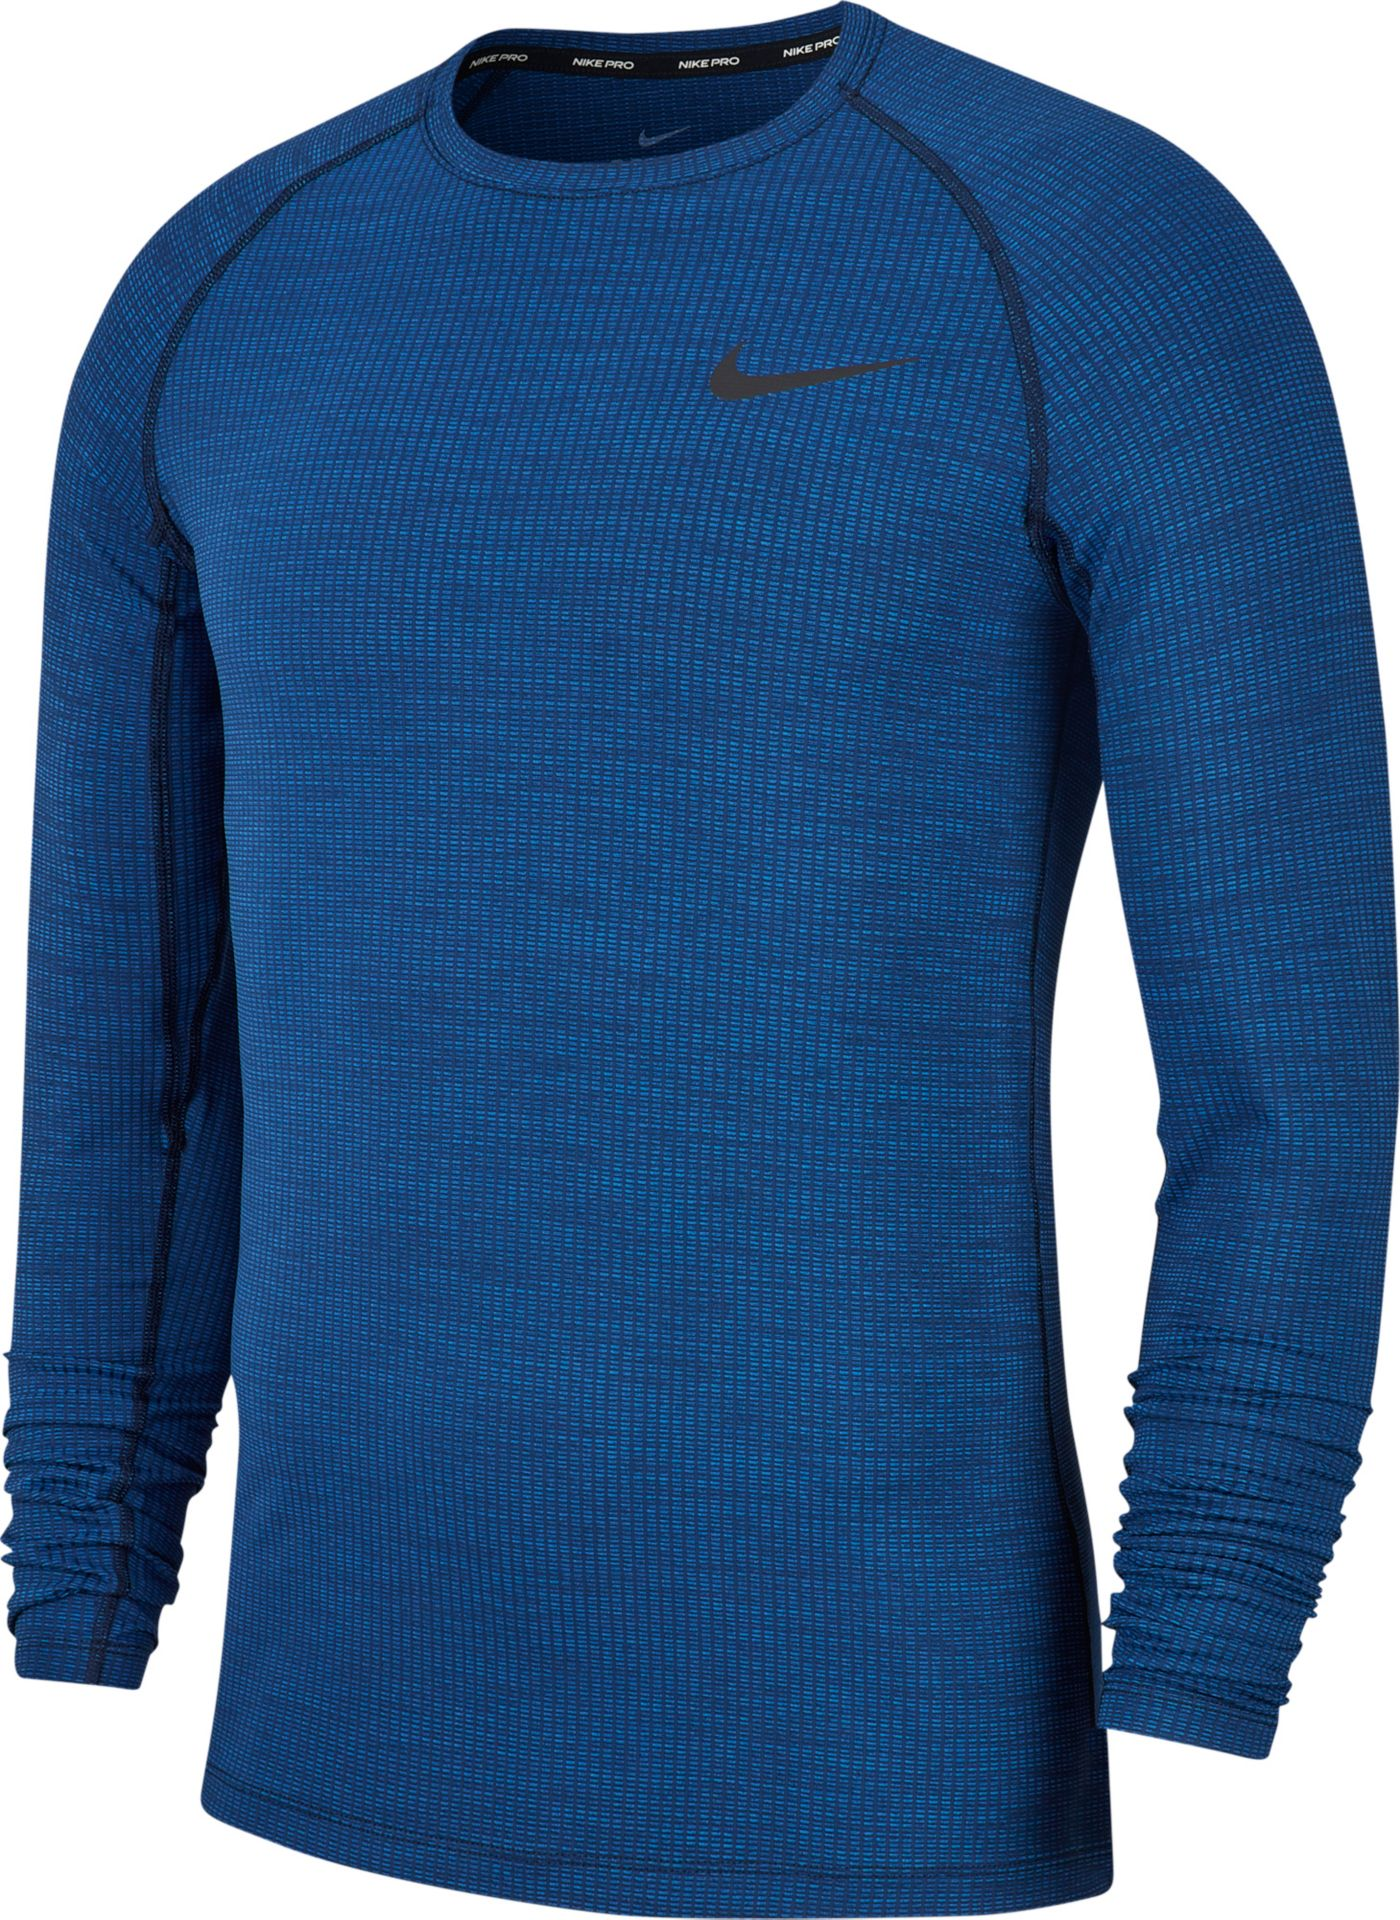 Nike Men's Pro Fitted Long Sleeve Shirt